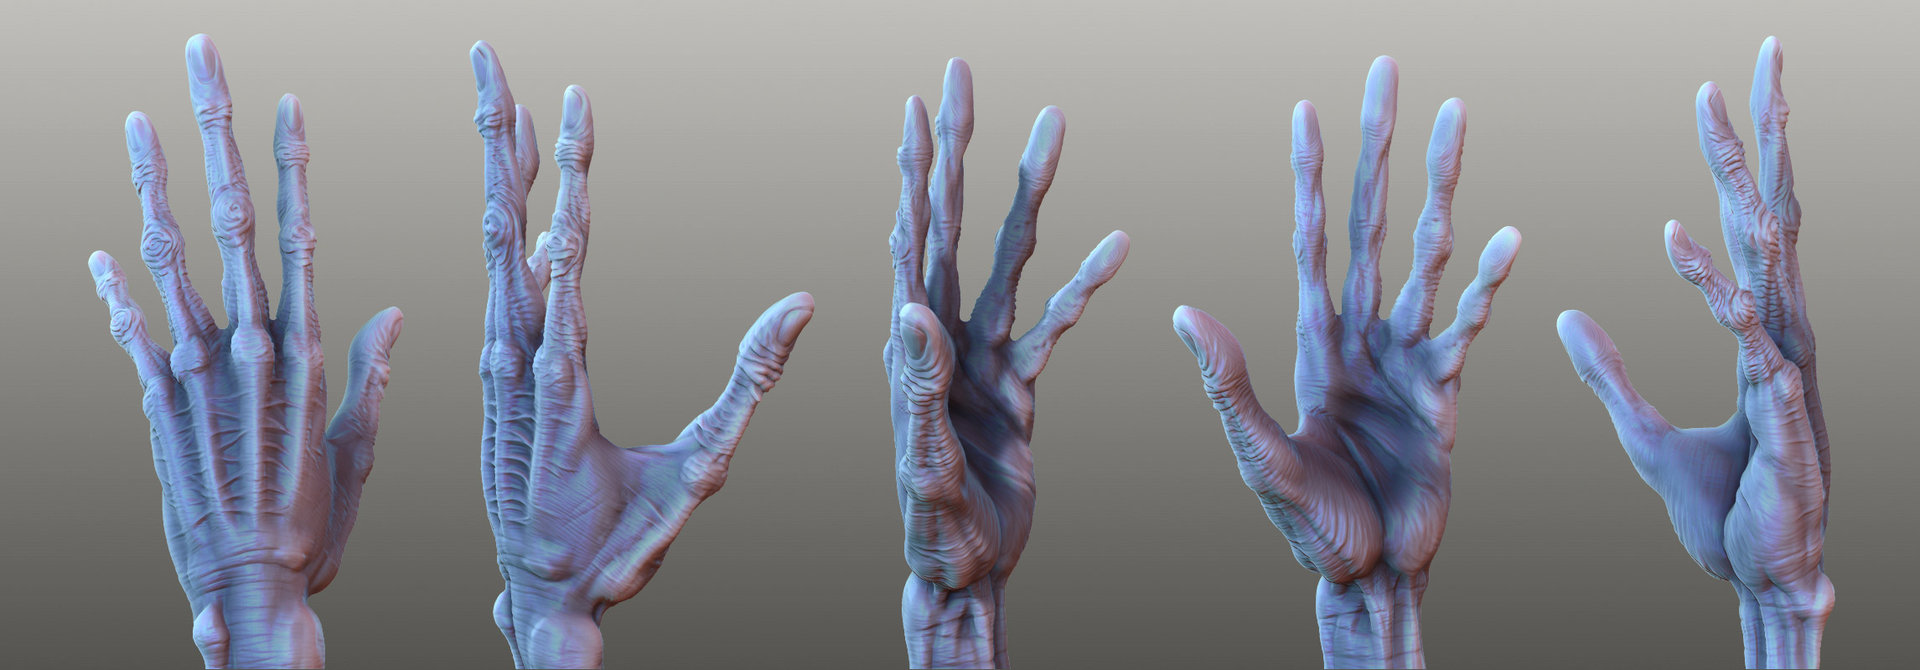 Oleg memukhin old spiderman hand 2 by monkibase d32053a